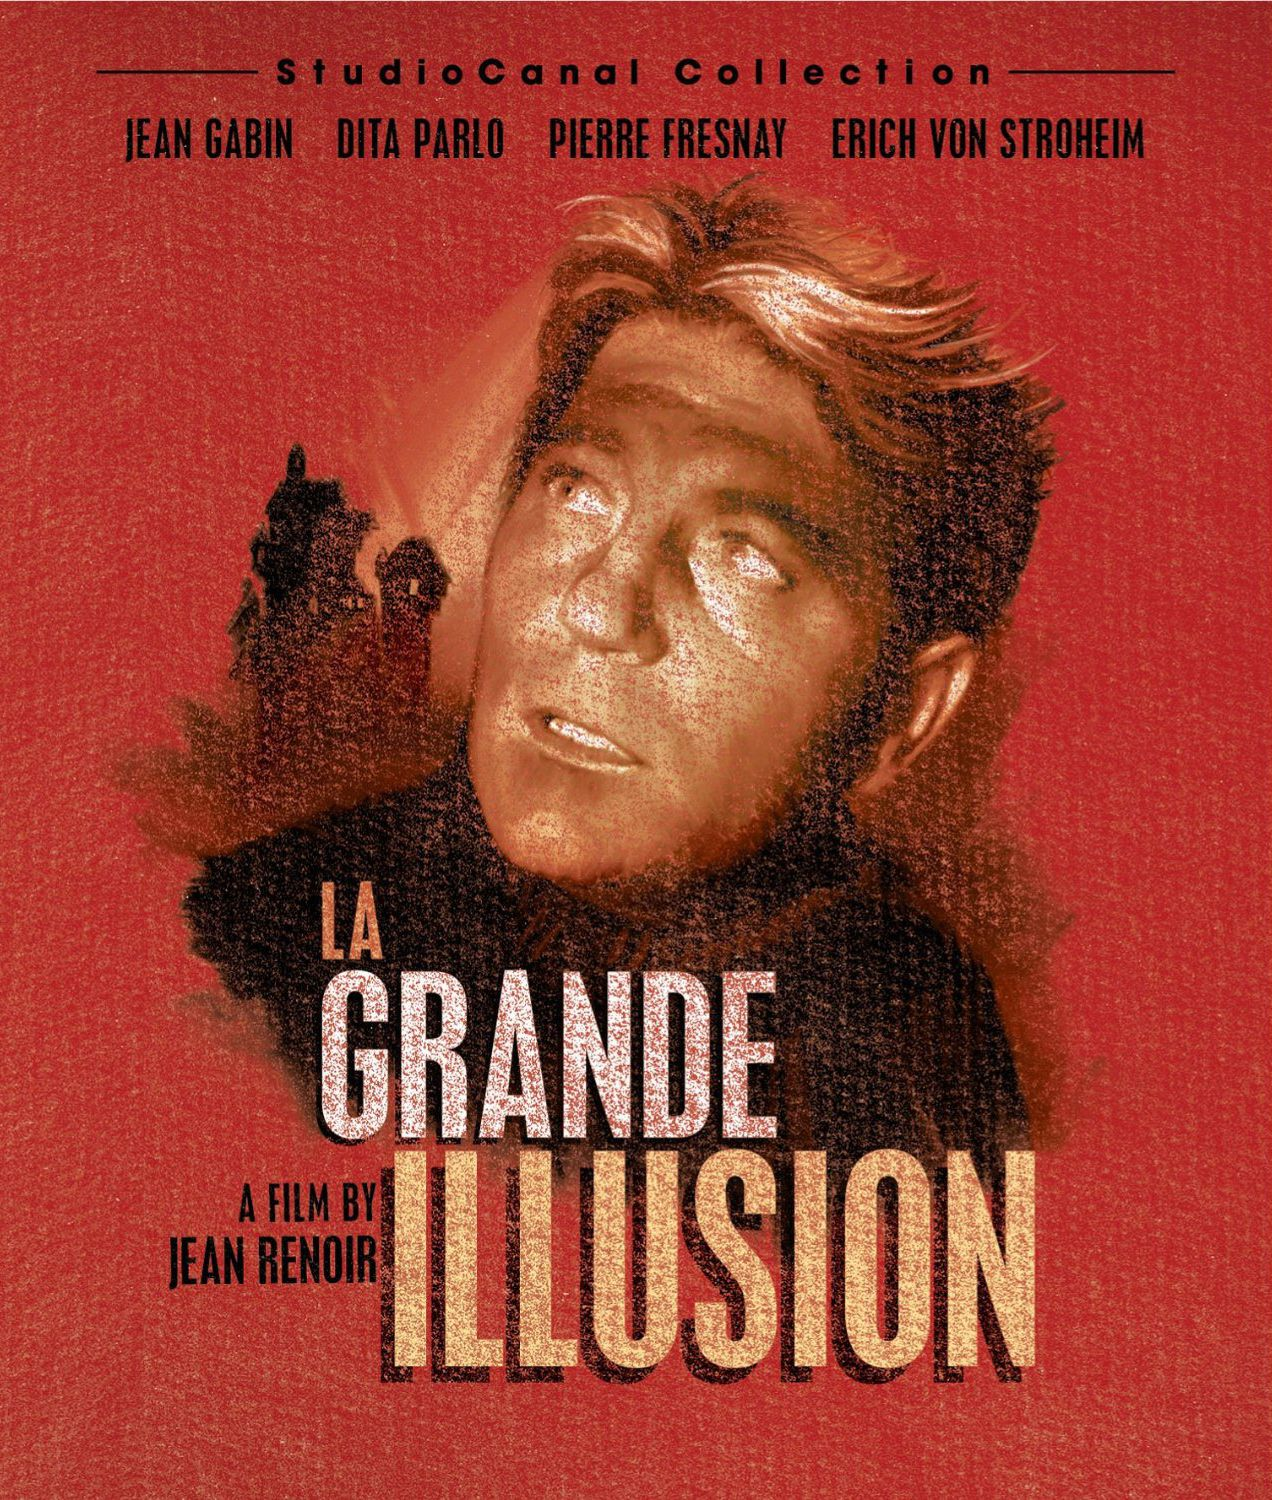 Publicity still for La Grande Illusion